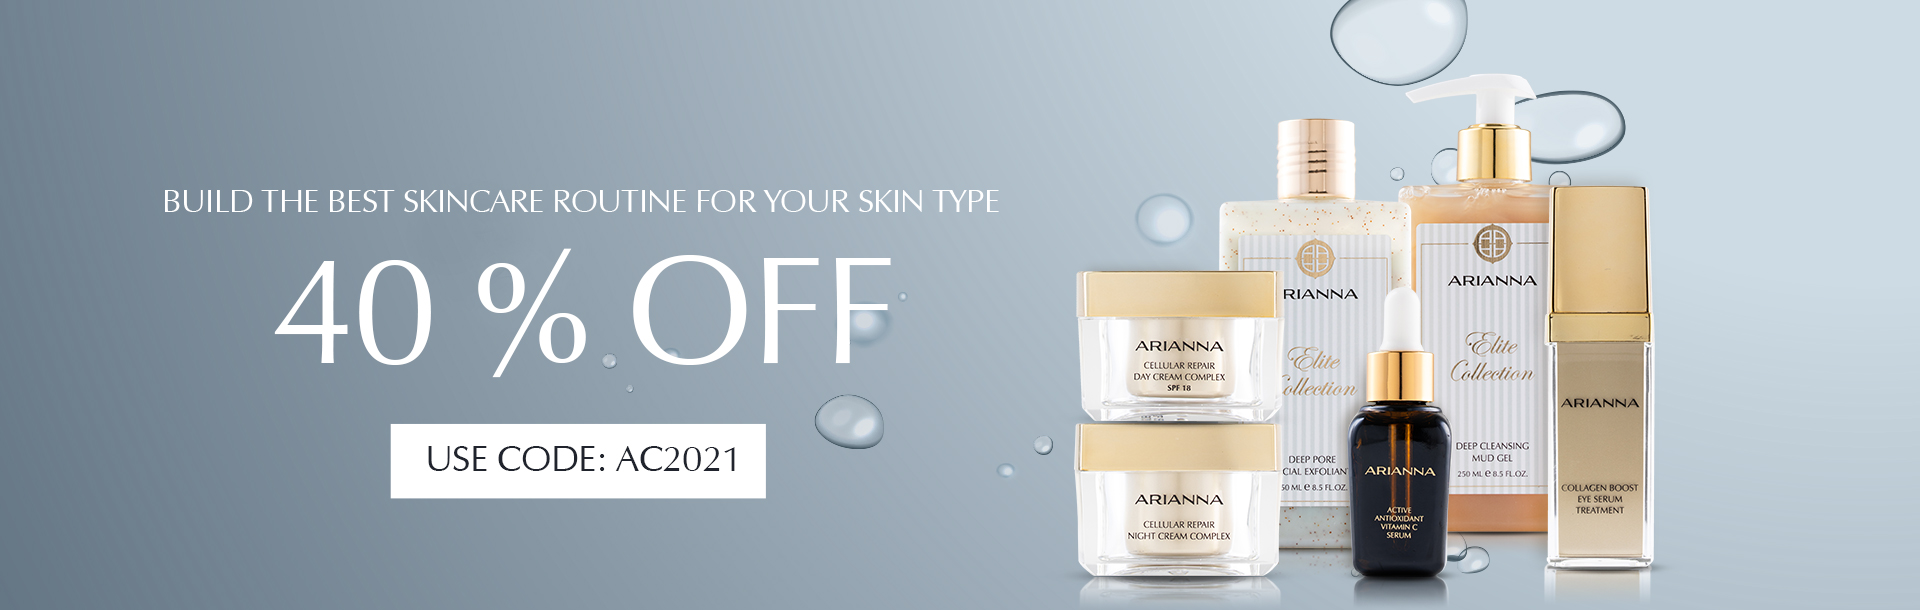 arianna skincare handcream